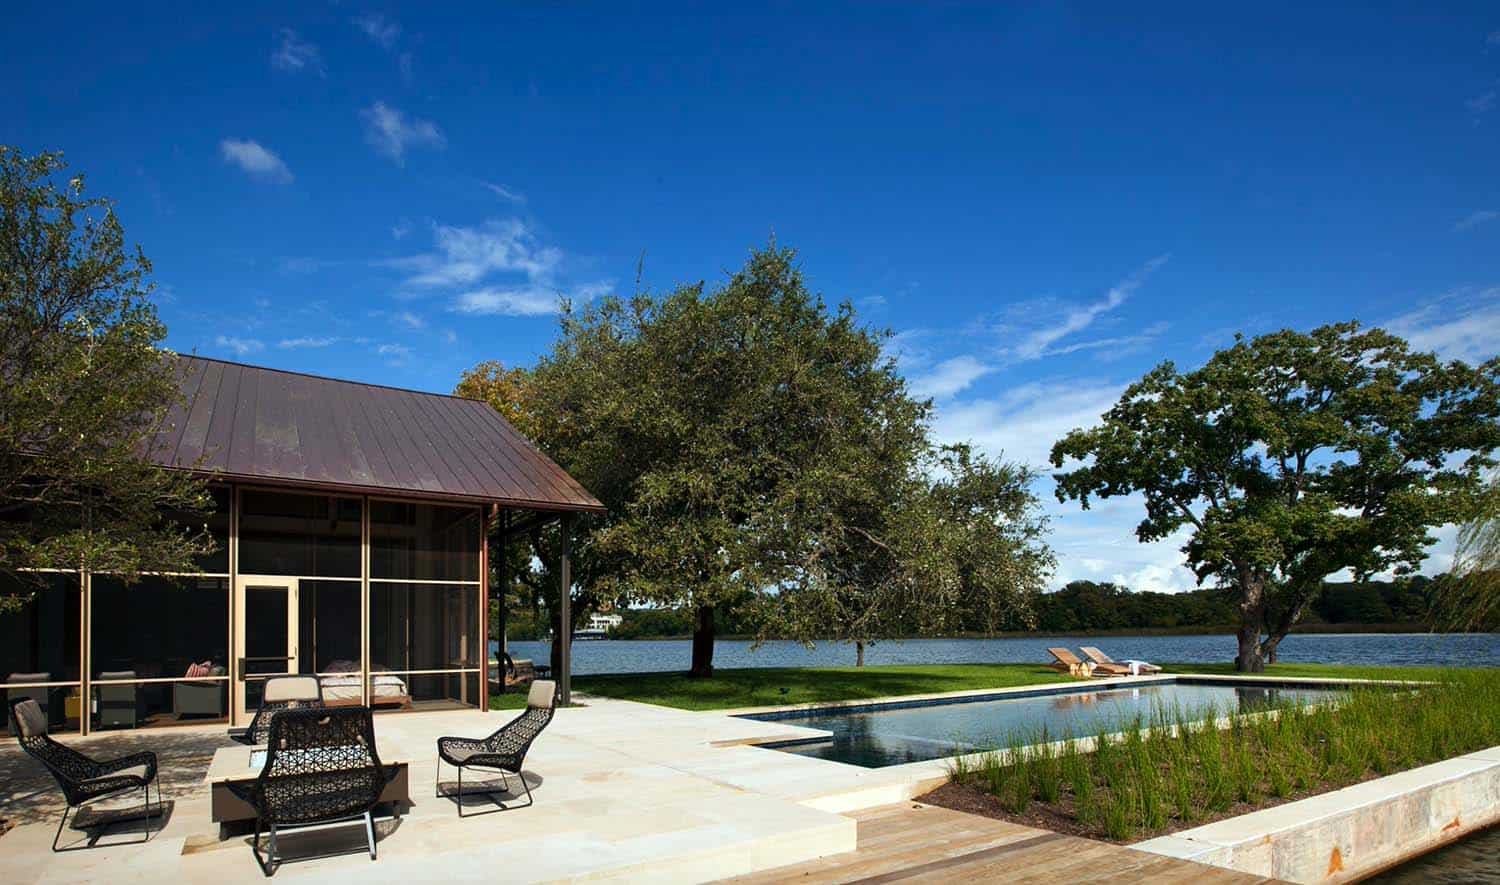 Contemporary Lake House Renovation-Furman Keil Architects-18-1 Kindesign